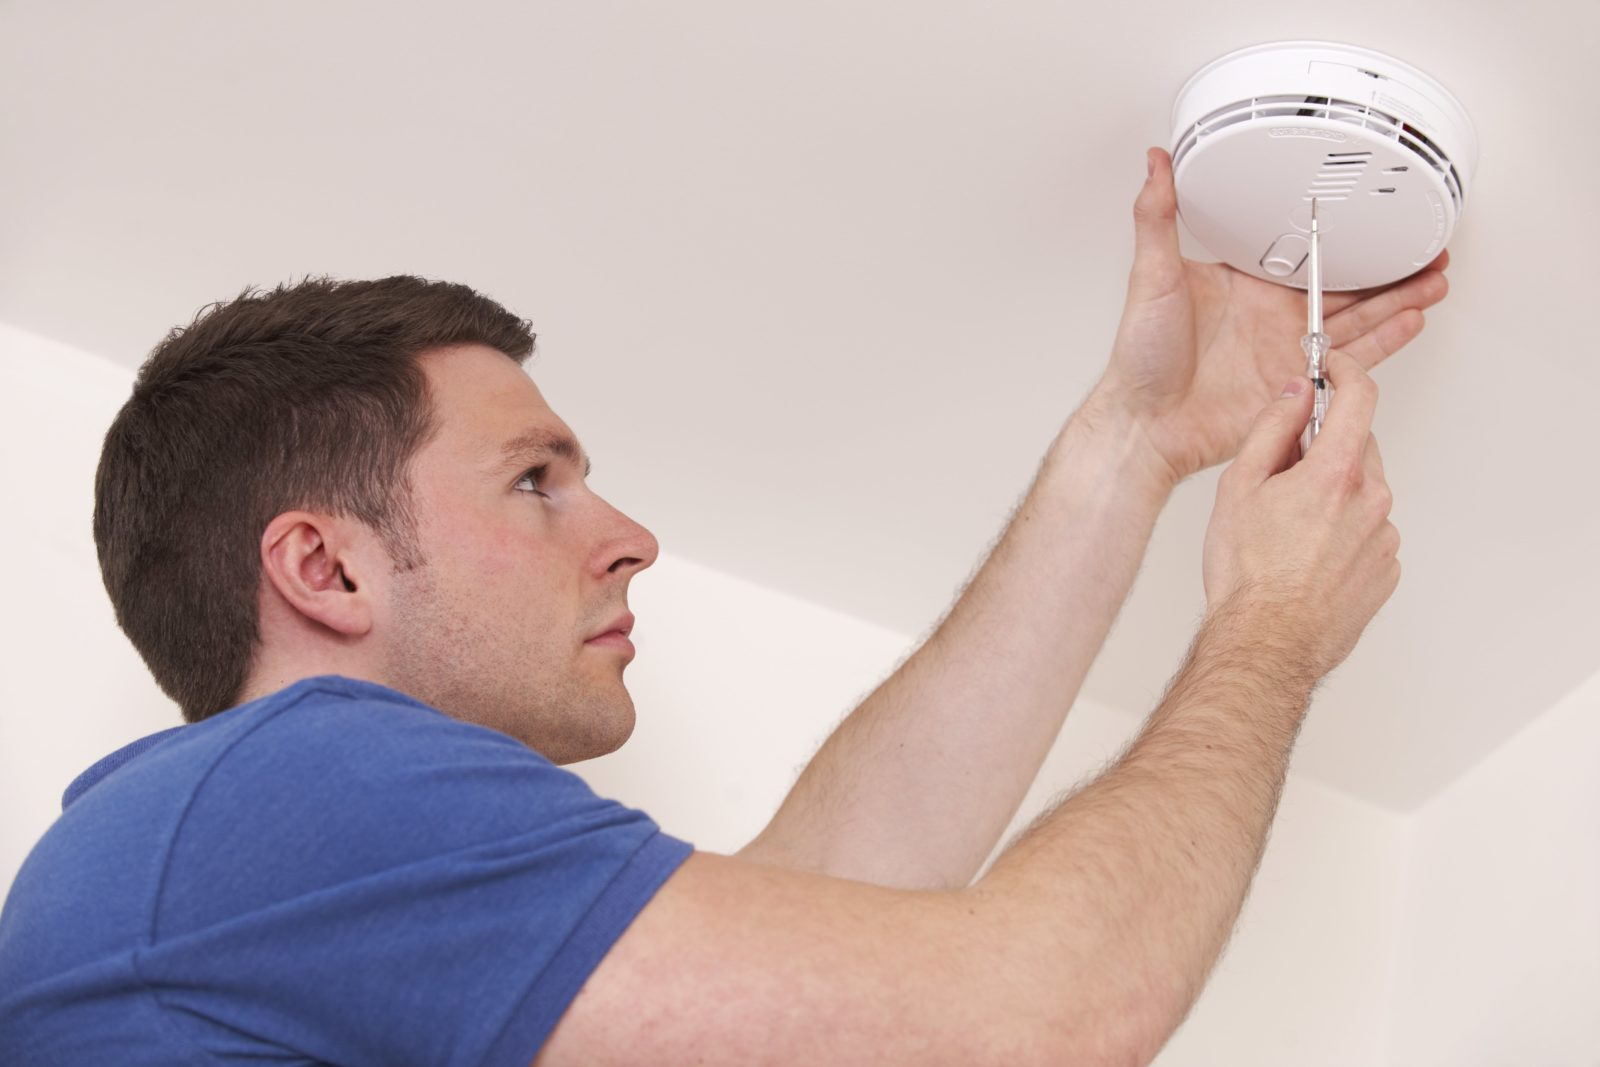 Tighter carbon monoxide alarm rules – what do agents need to know?